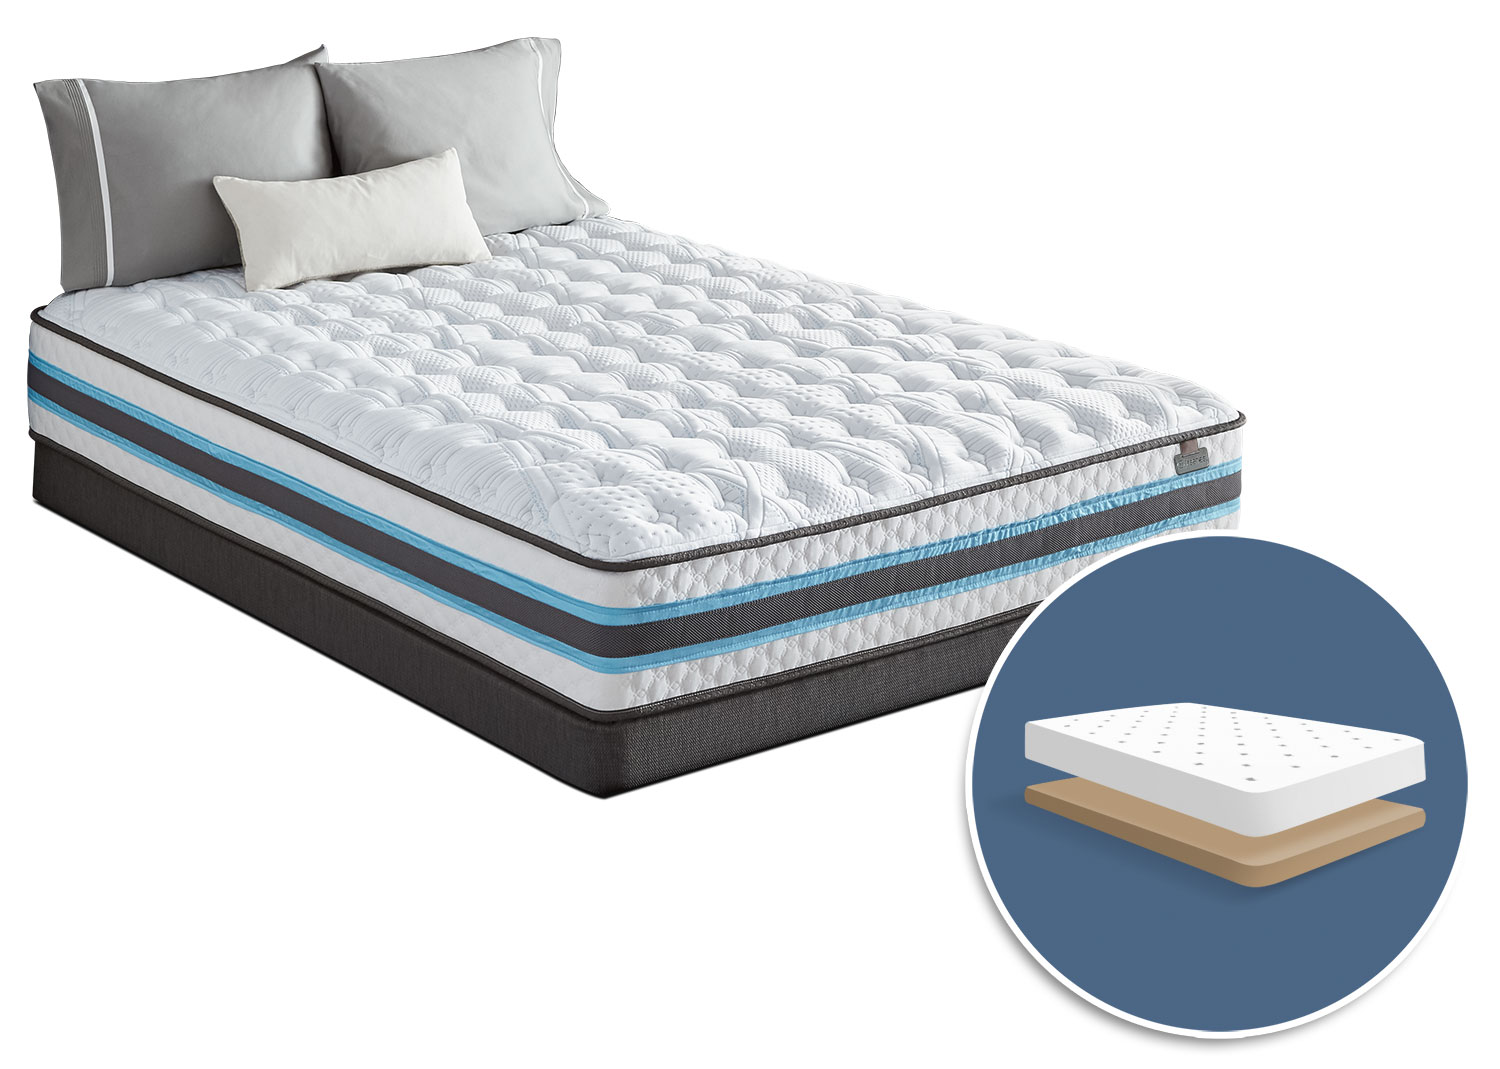 Mattresses and Bedding - Serta iSeries® Atmosphere Tight-Top Firm Low-Profile King Mattress Set